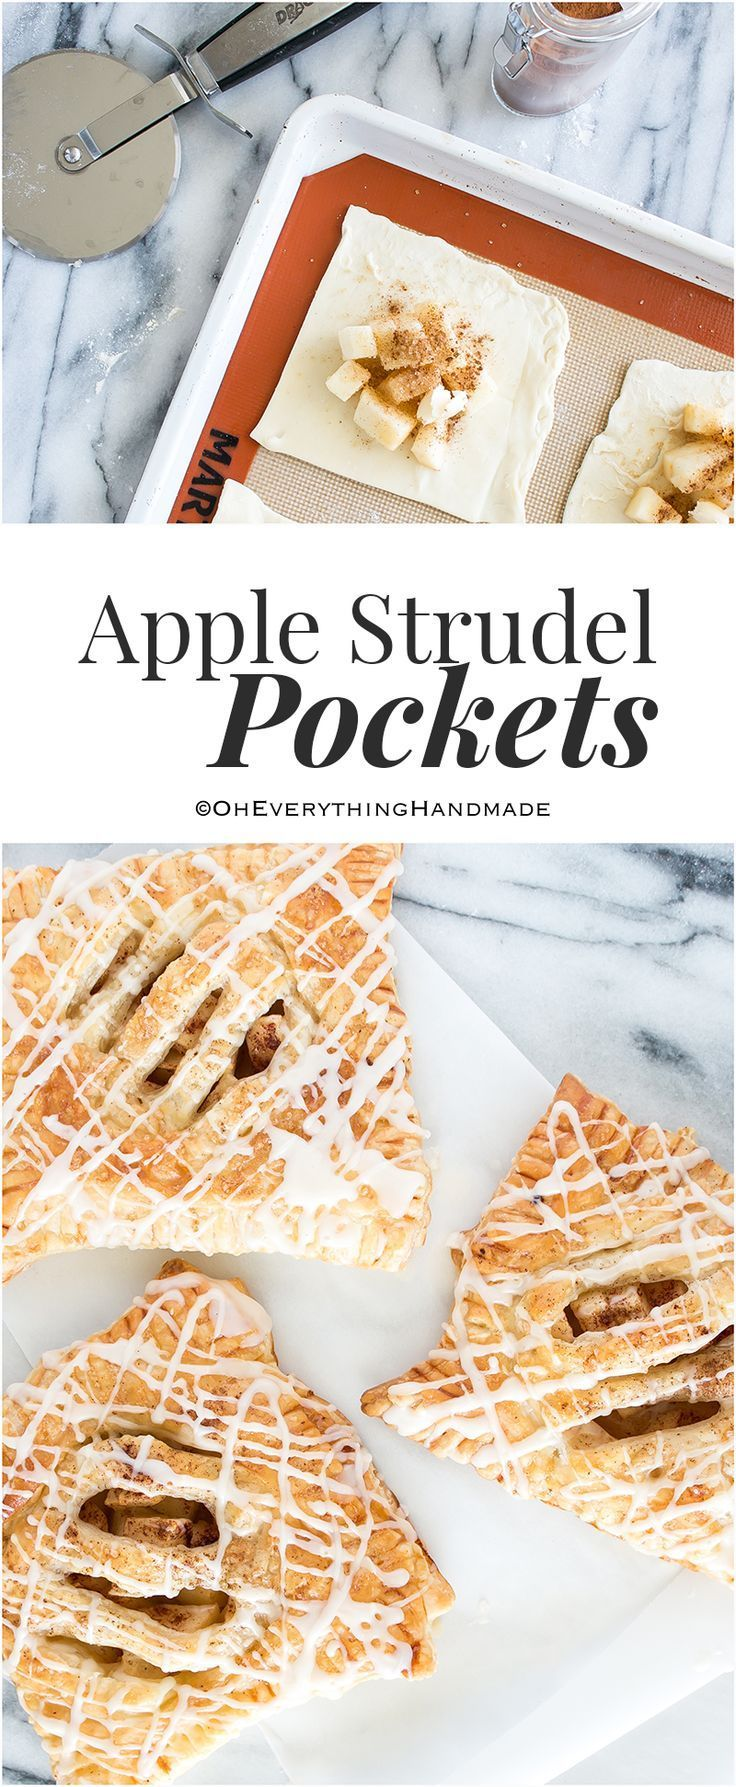 Apple Strudel Pockets Apple Strudel Pockets - Recipe